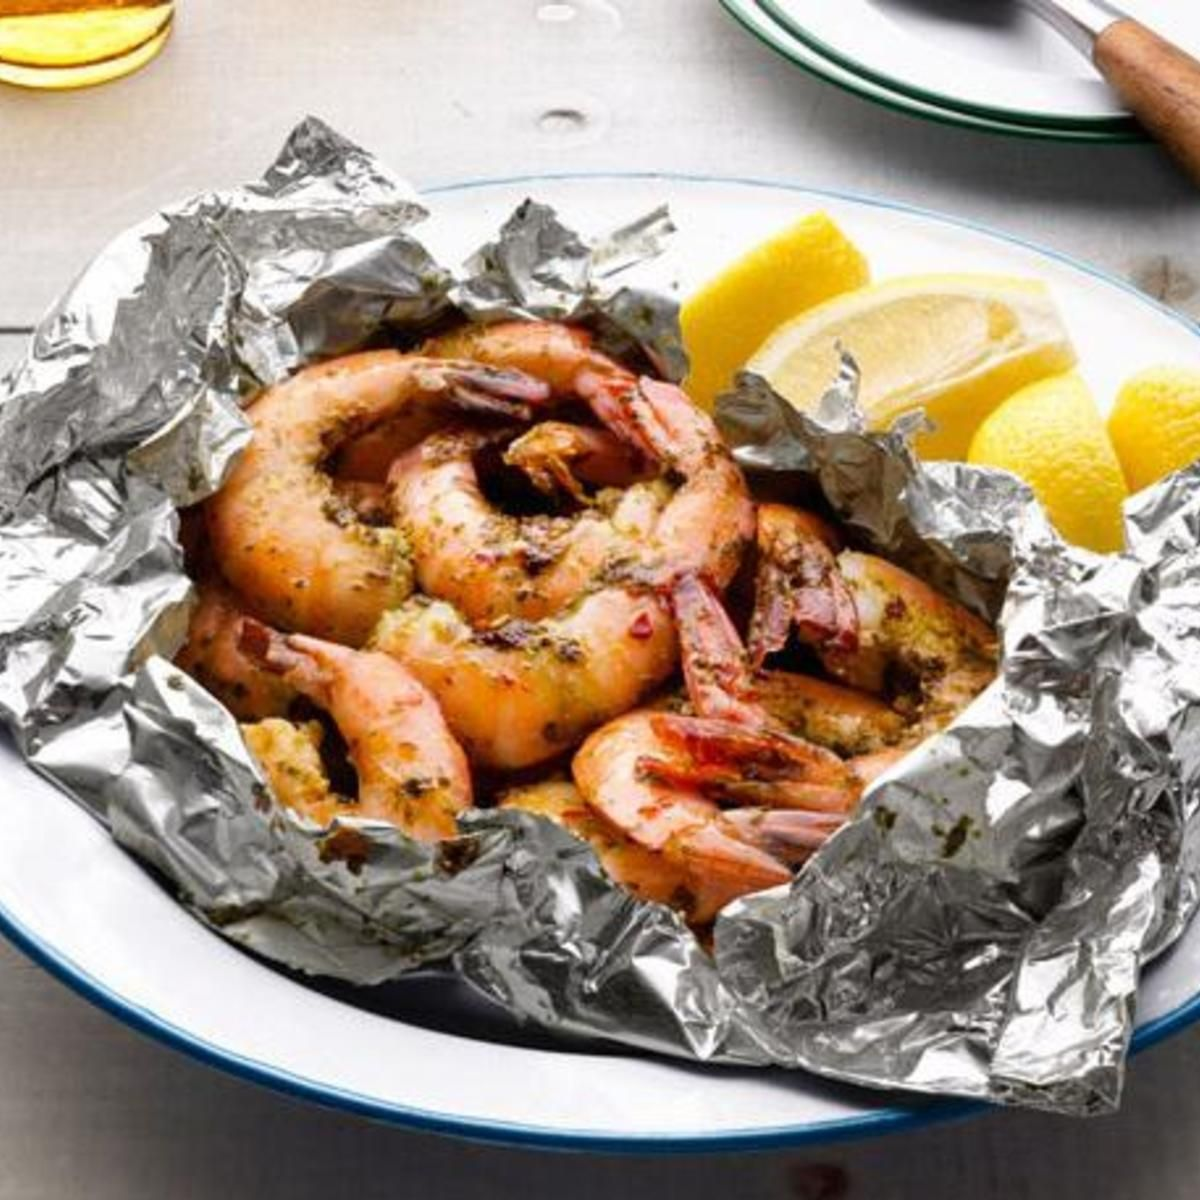 5 Simple Spring Meals On The Grill: Grilled Garlic Shrimp In Foil